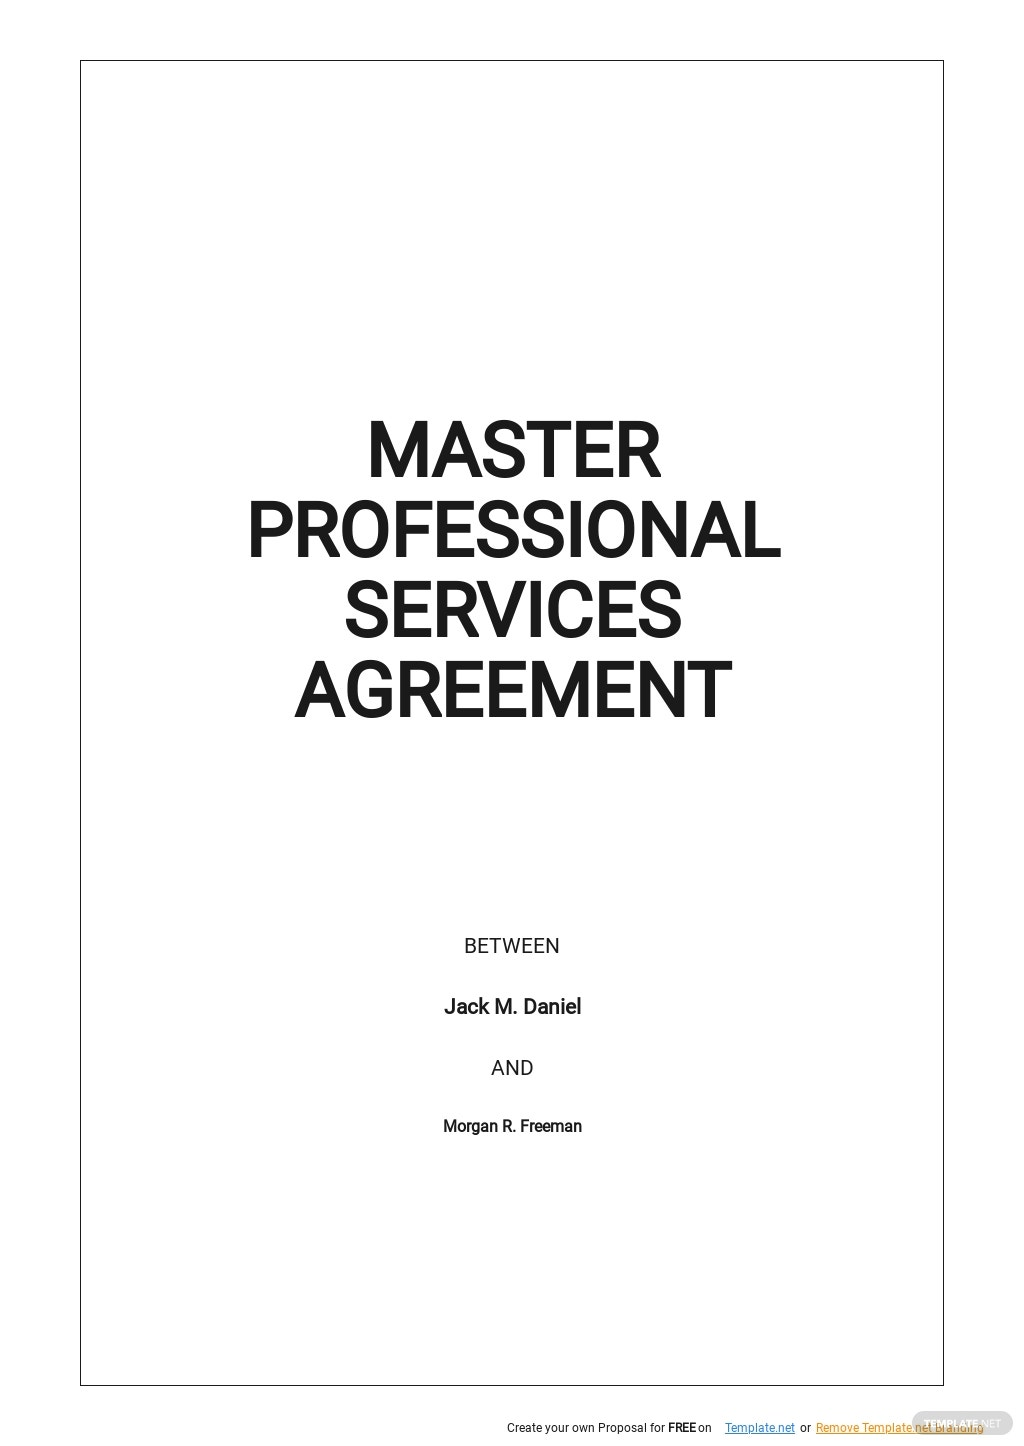 Master Professional Services Agreement Template.jpe